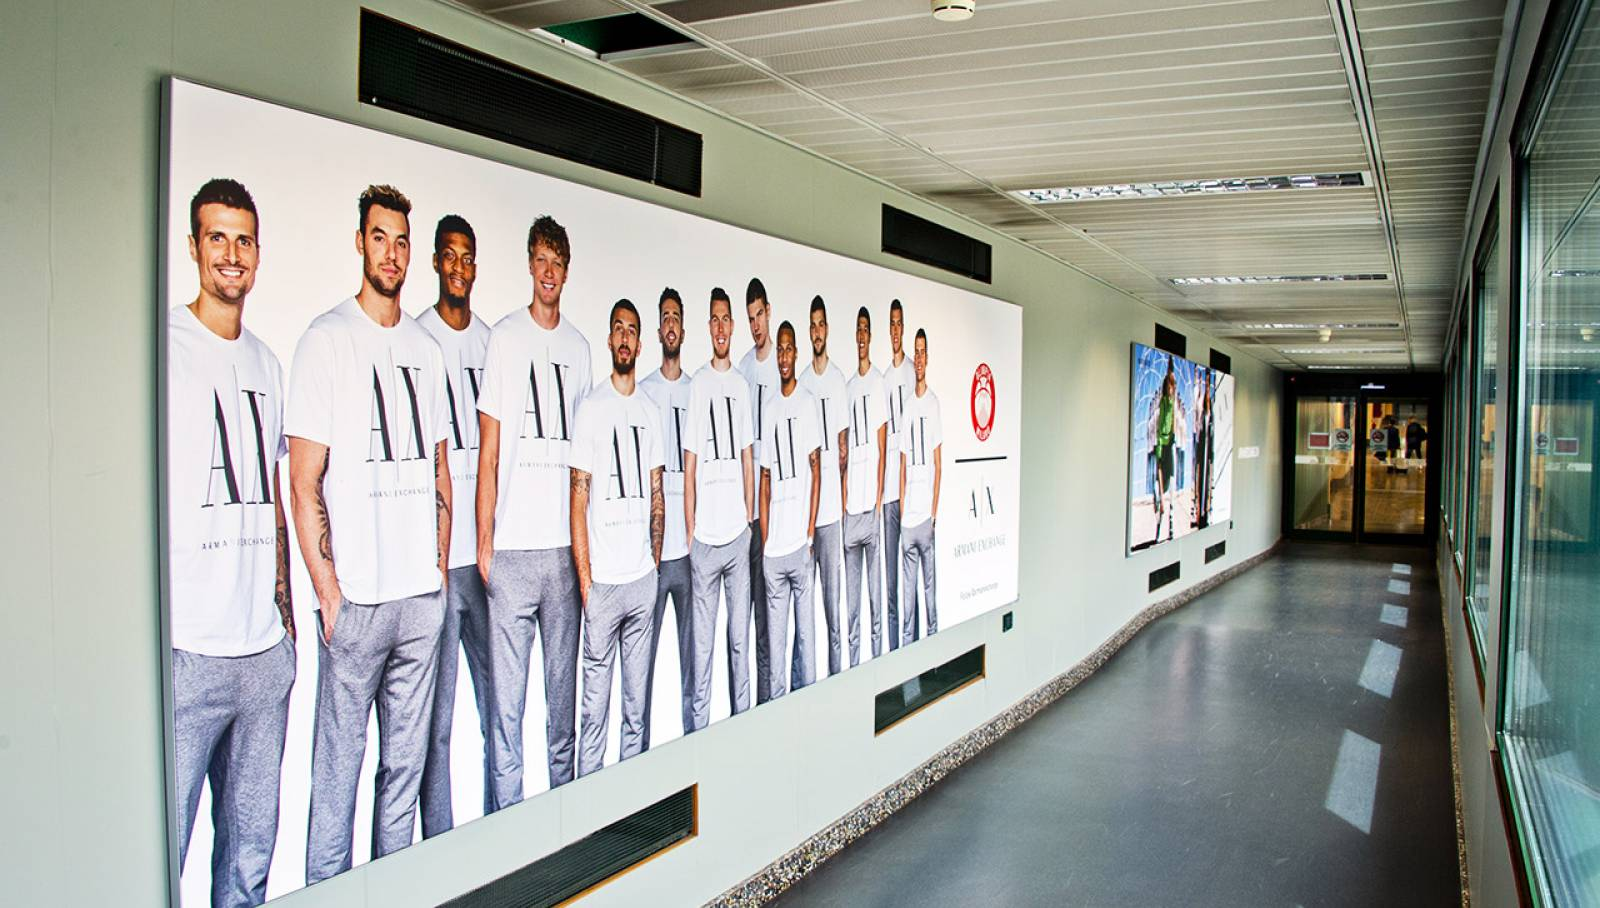 Out of Home advertising IGPDecaux at Malpensa airport for Armani